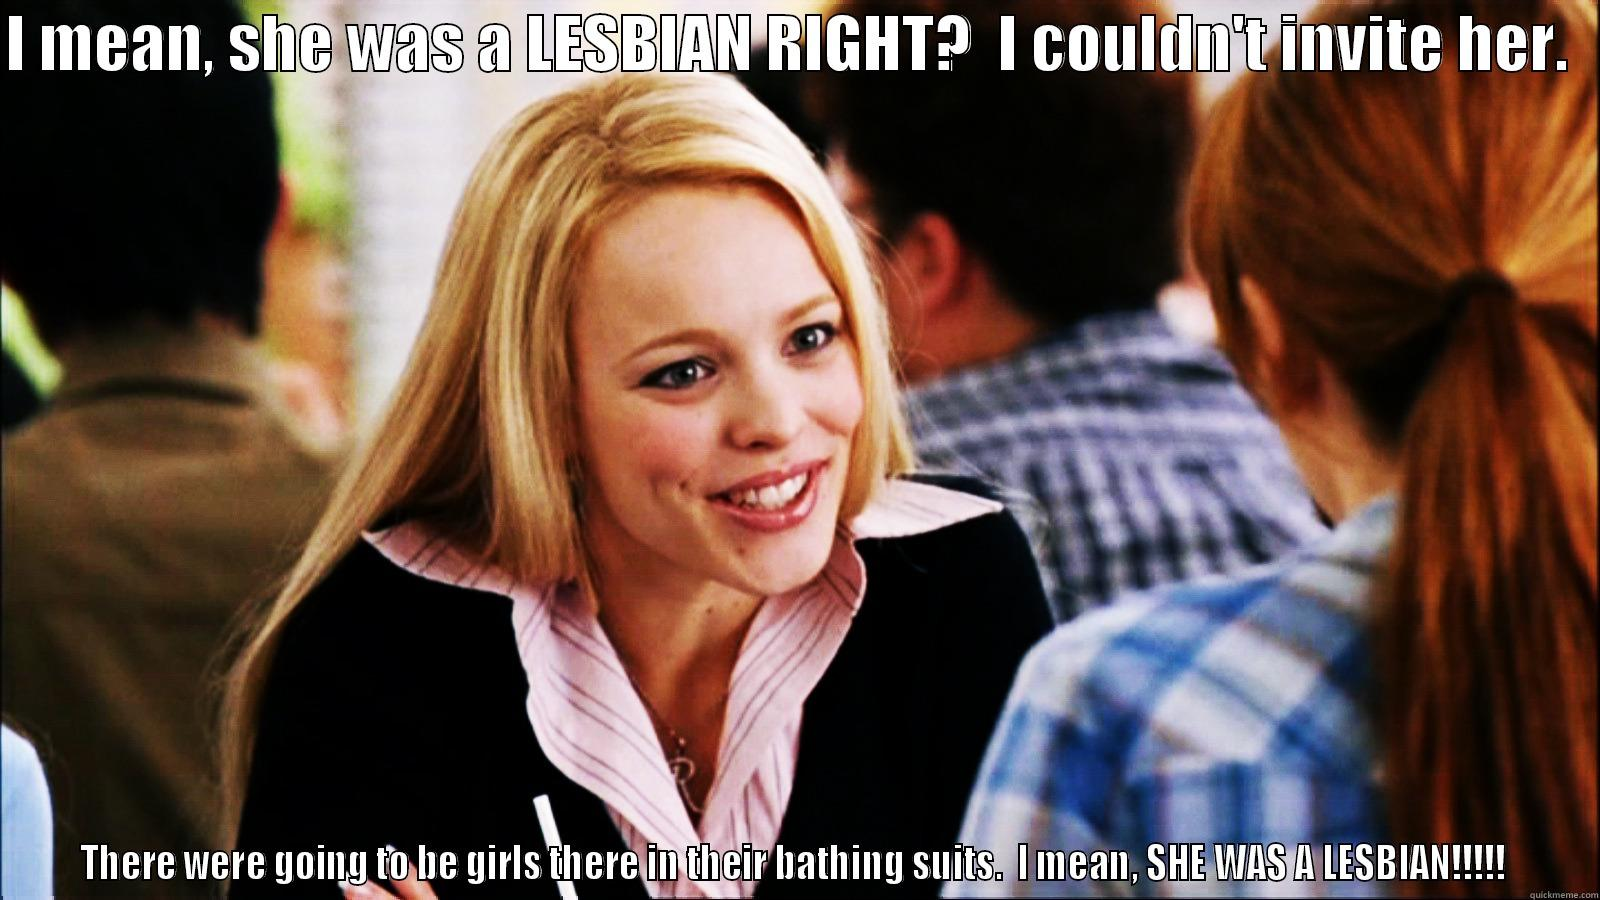 Regina George 1 - I MEAN, SHE WAS A LESBIAN RIGHT?  I COULDN'T INVITE HER.   THERE WERE GOING TO BE GIRLS THERE IN THEIR BATHING SUITS.  I MEAN, SHE WAS A LESBIAN!!!!!  regina george